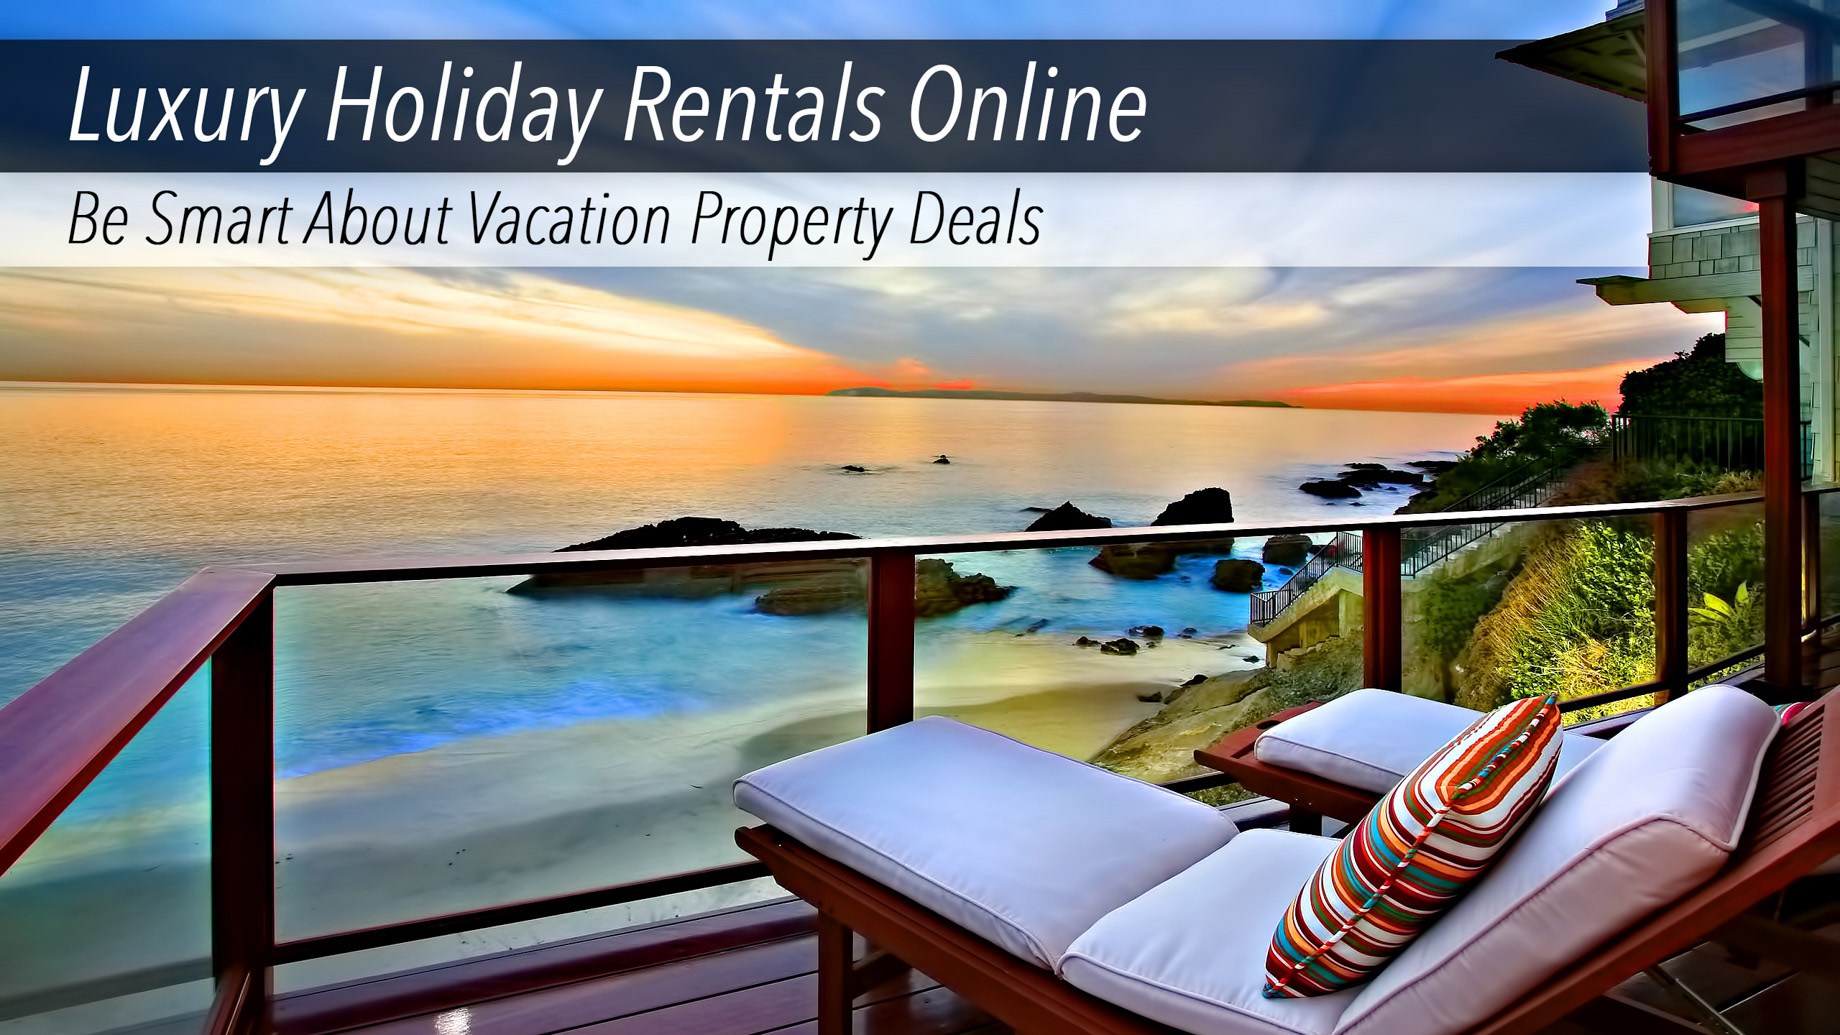 Luxury Holiday Rentals Online - Be Smart About Vacation Property Deals